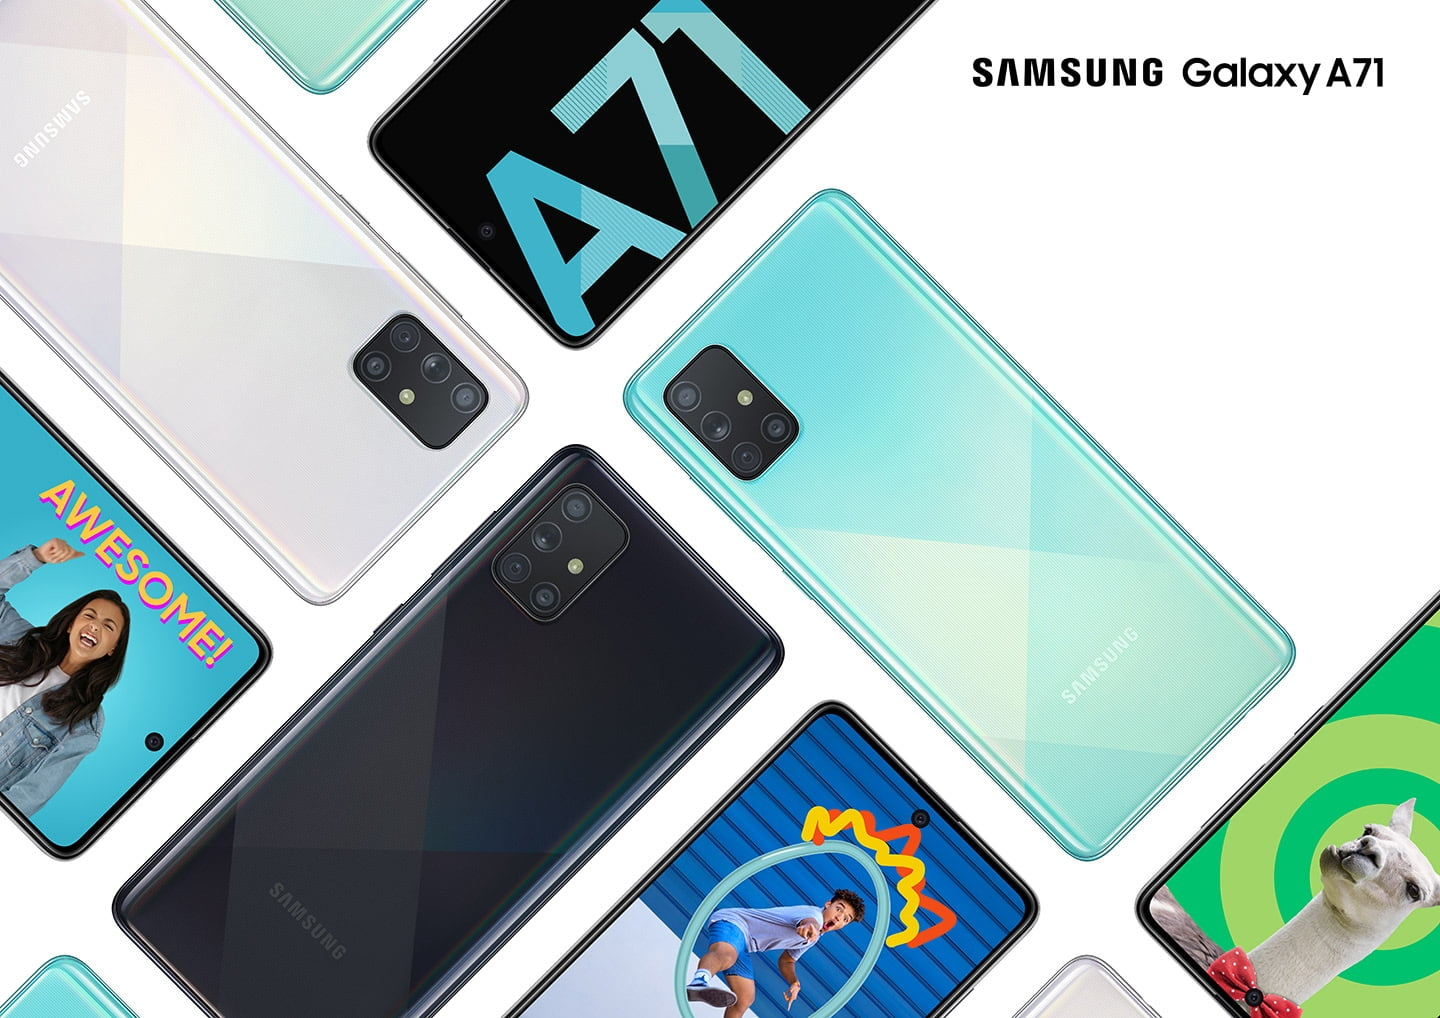 Samsung Galaxy A71 5G is now receiving the Android 11 with One UI 3.0